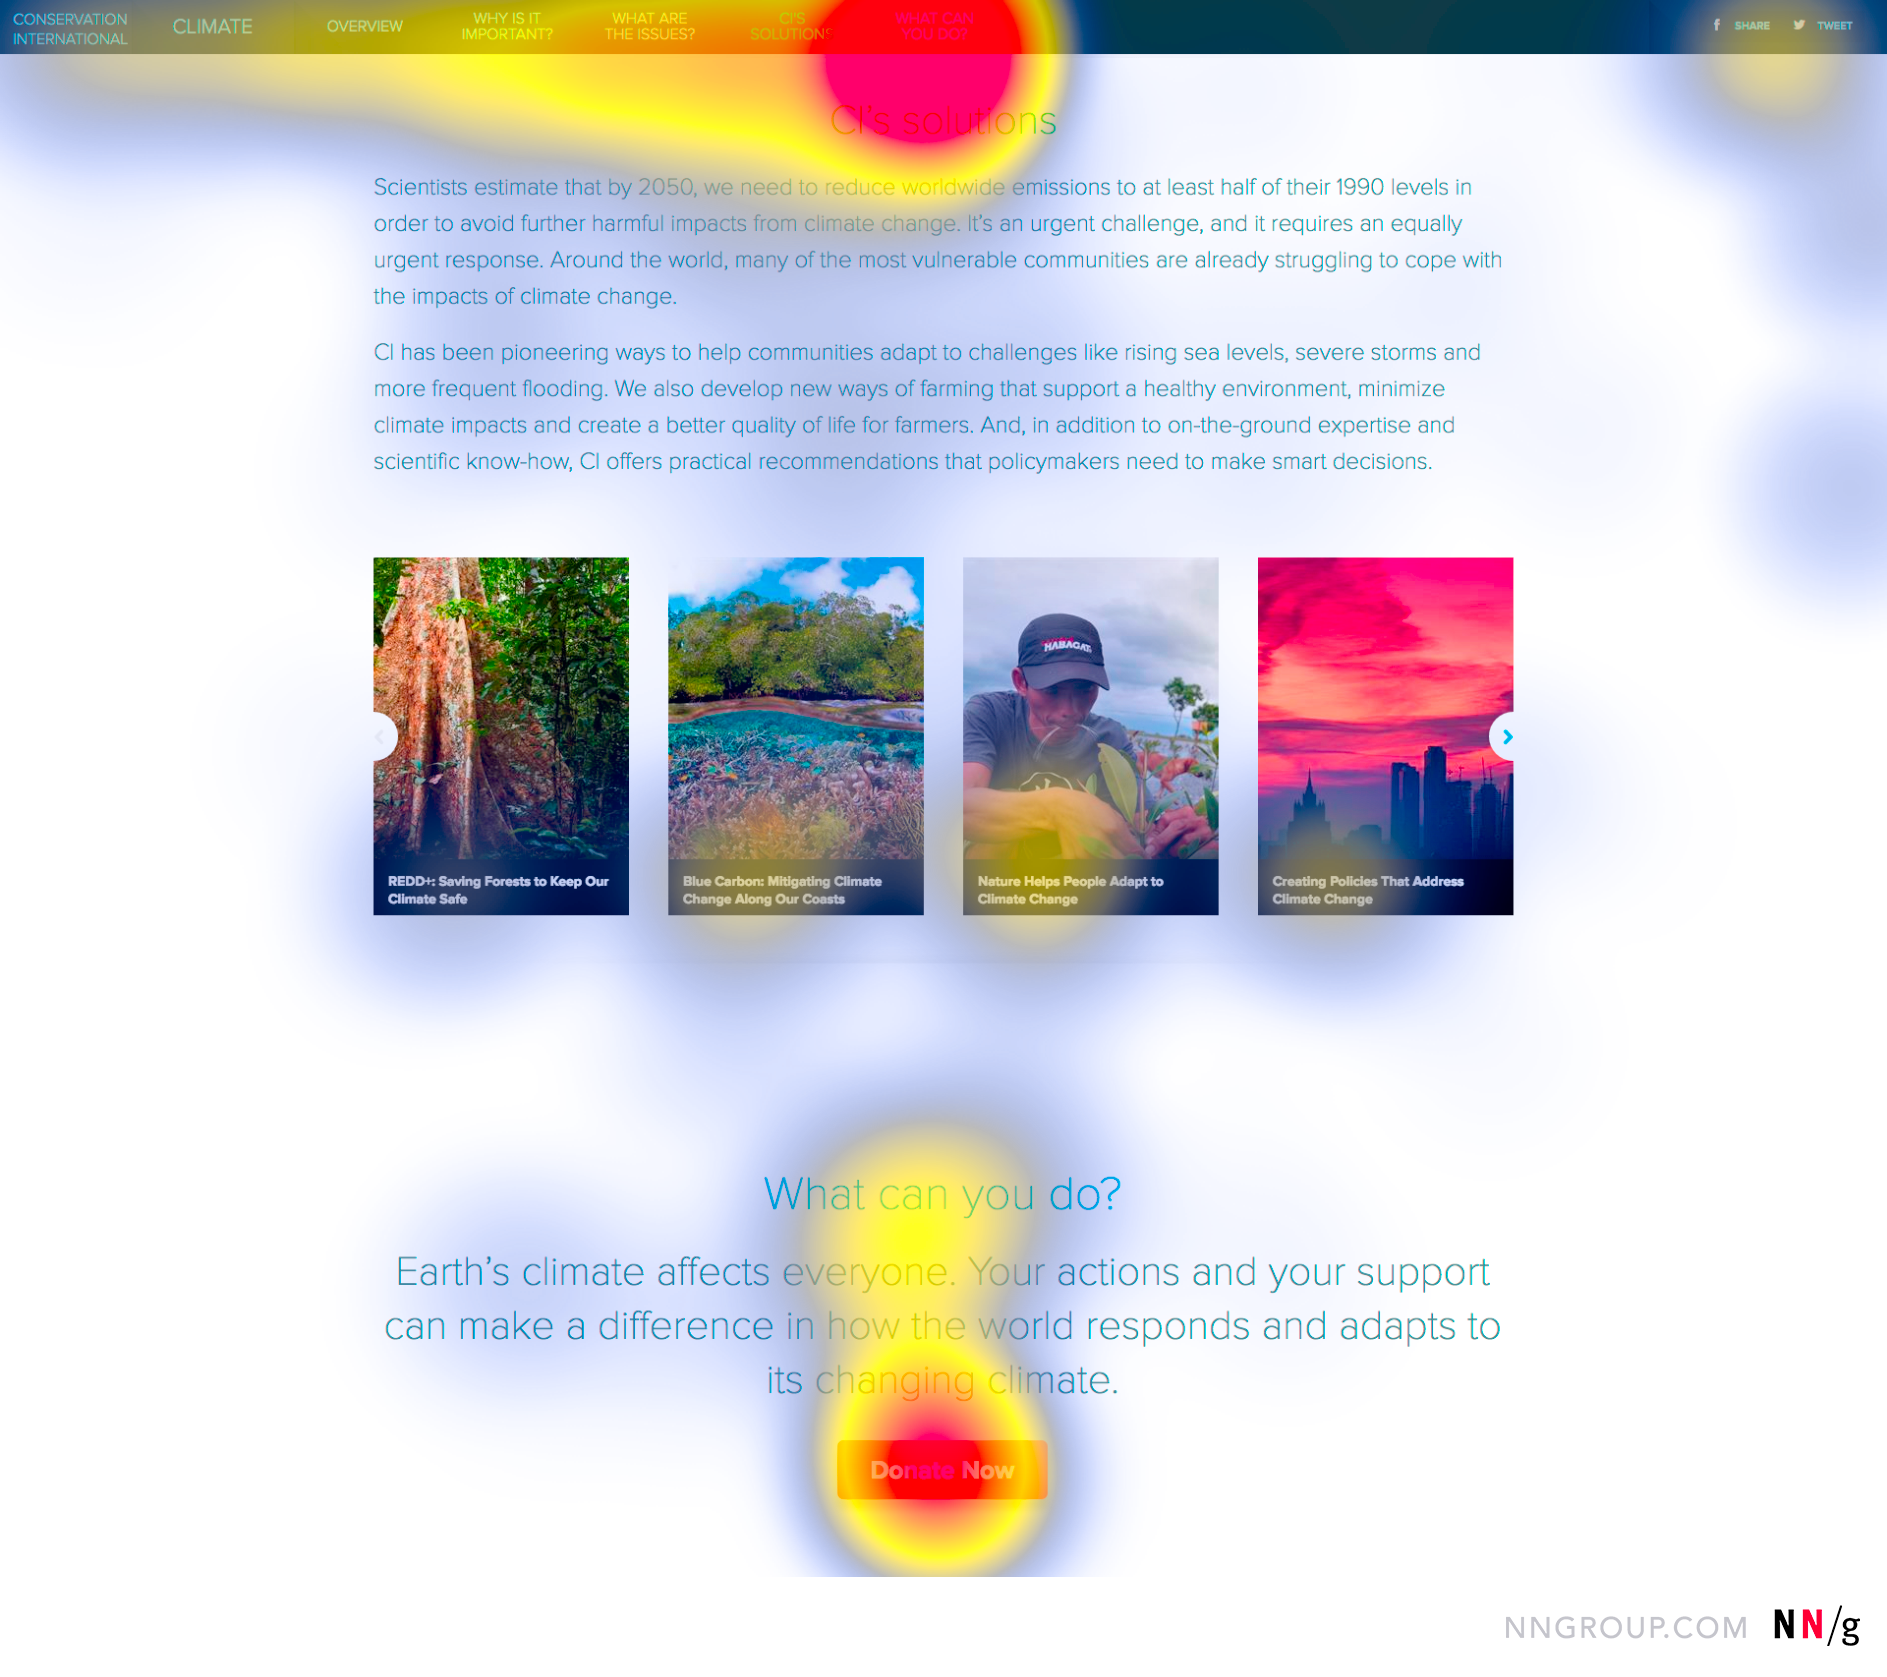 Heatmap Visualizations from Signifier Eyetracking Experiment